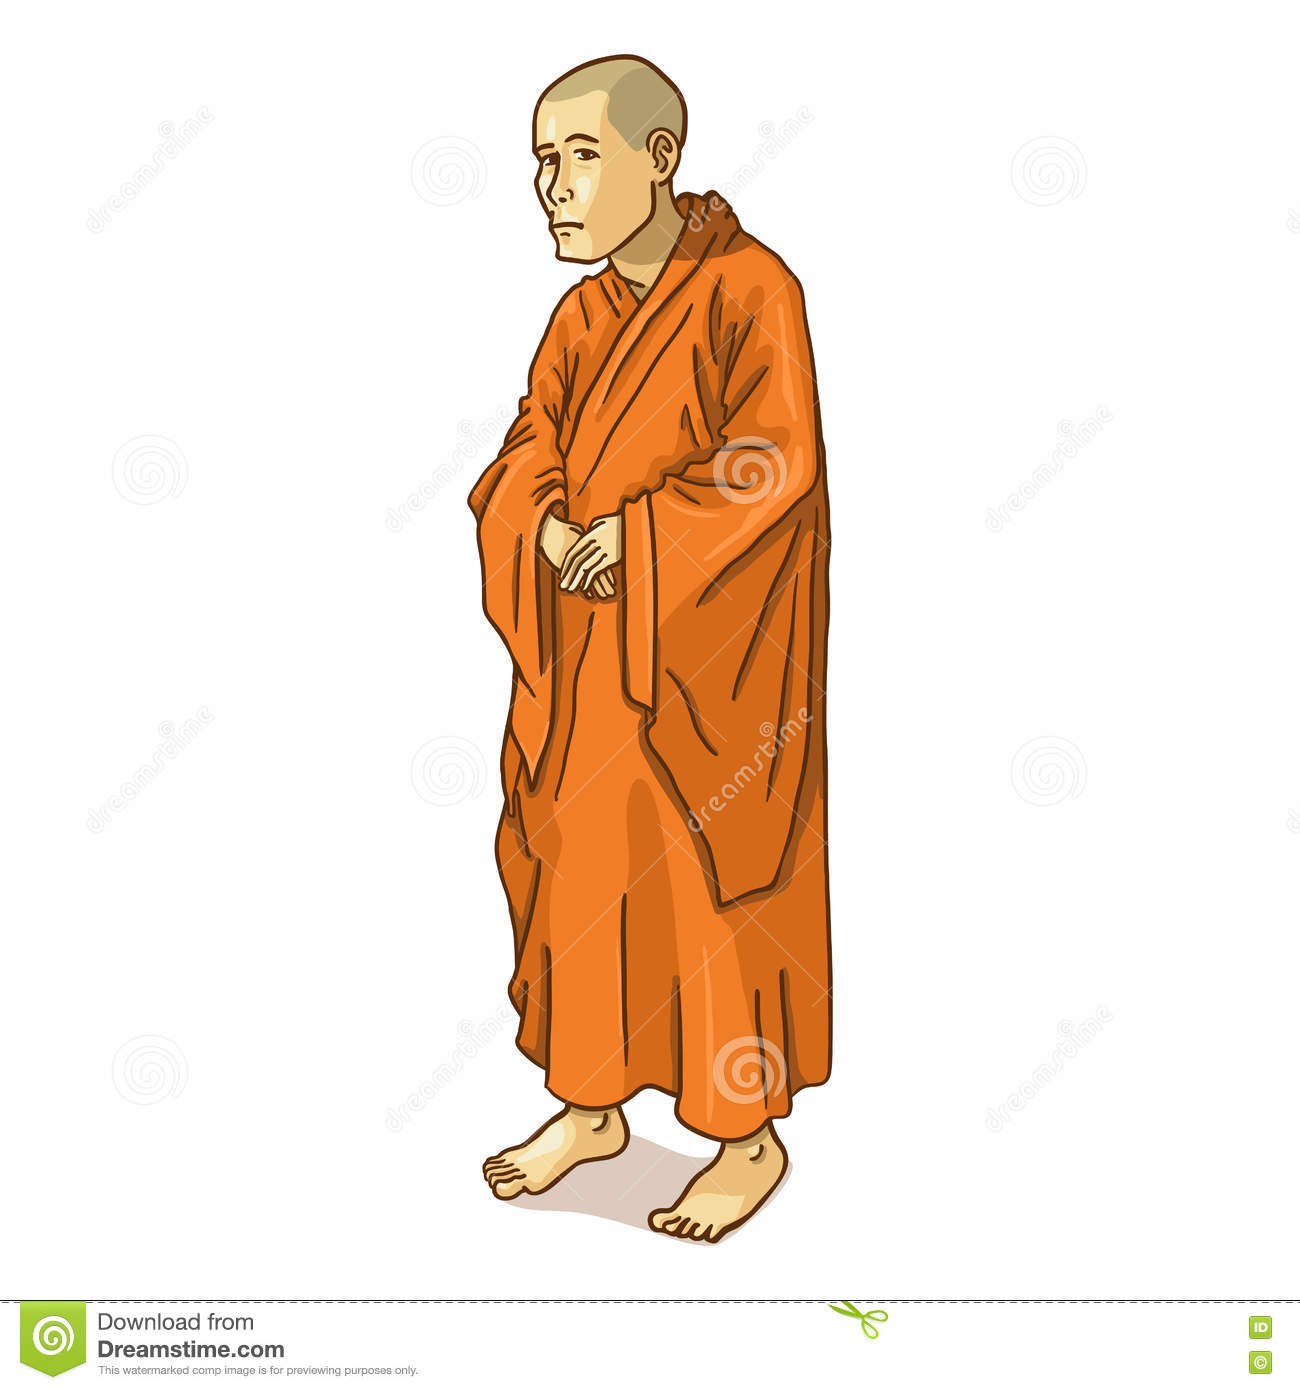 orwigsburg buddhist singles The word atman is from the hindu, buddhist, and jain religious  the greatest single source of complexity in obamacare is the need to be backwards-compatible.